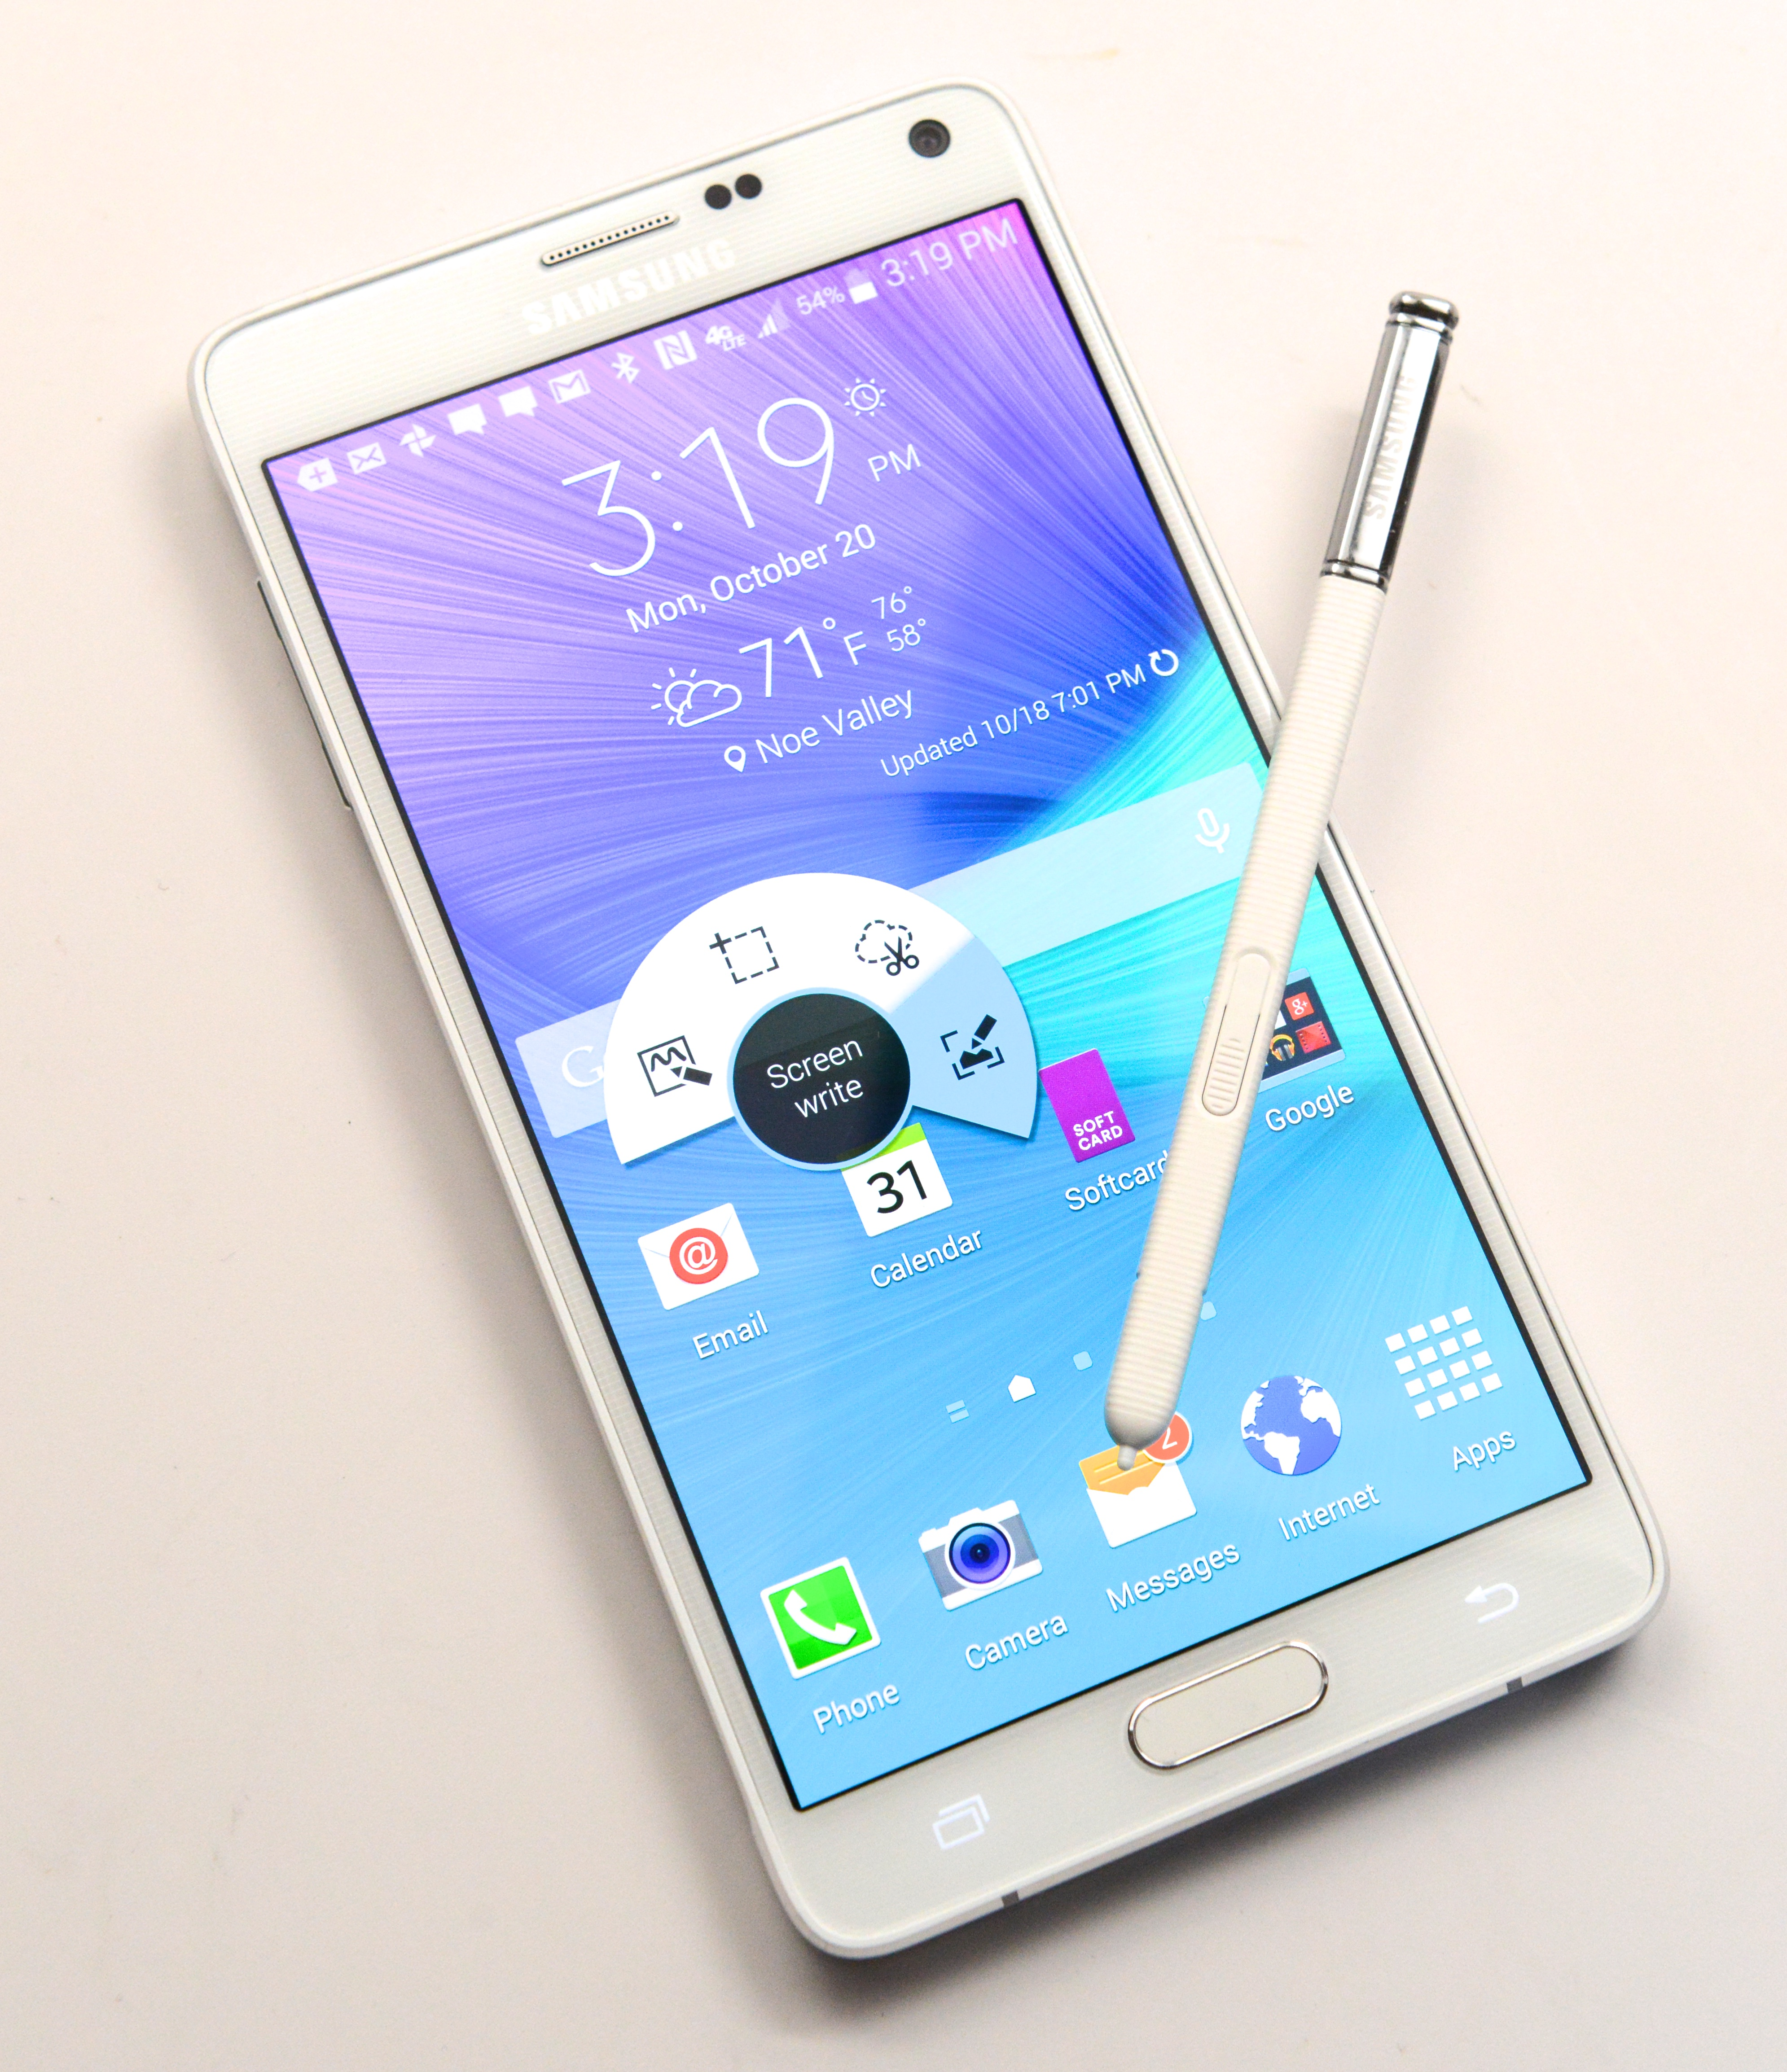 Galaxy Note 4 Release Date (U.S.): What to Expect